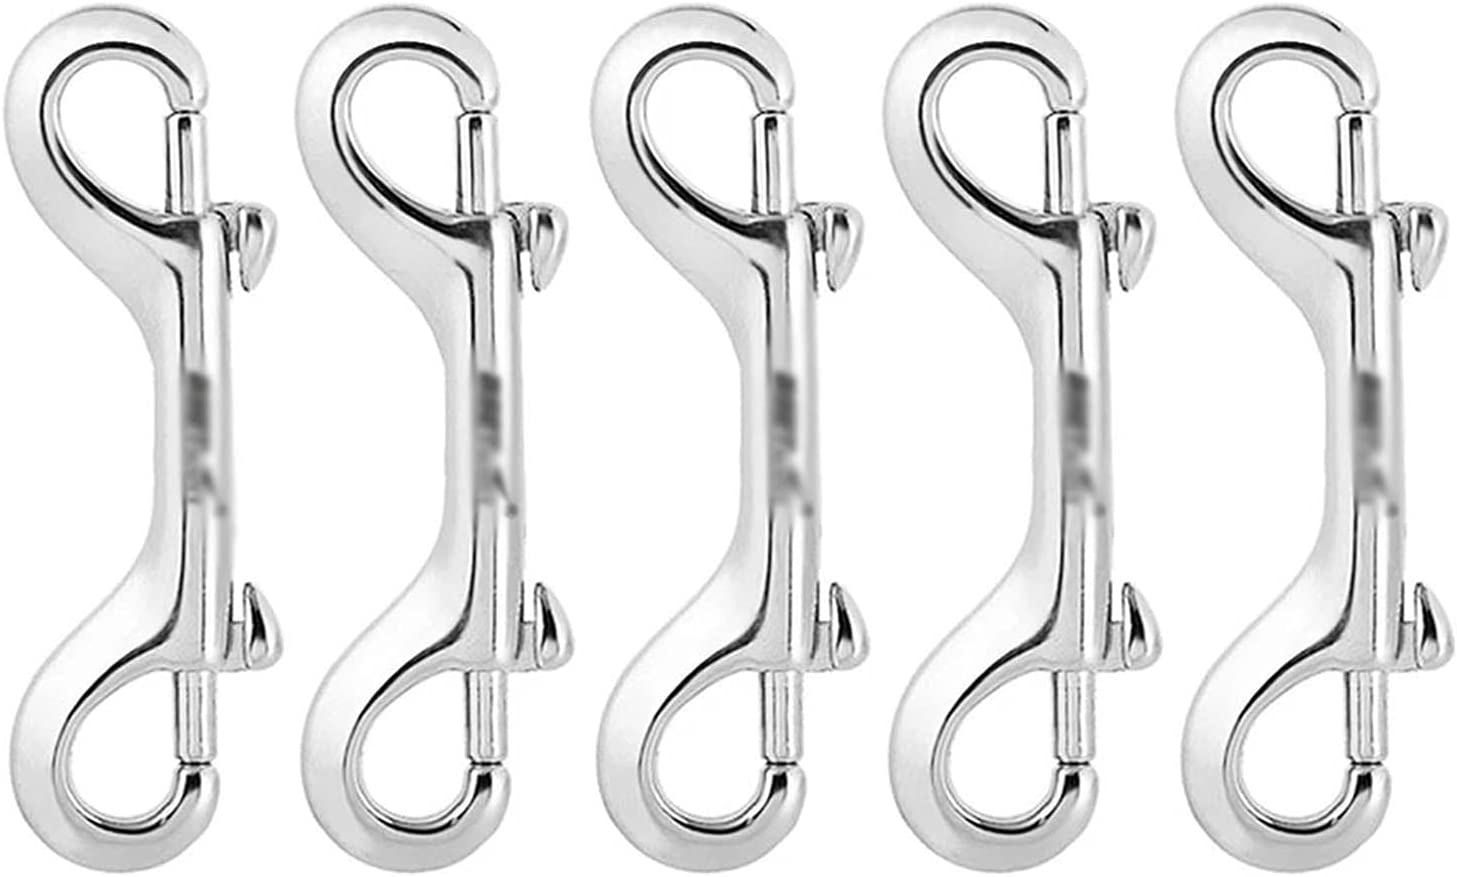 YDSHOLL 5PCS SS 316 Scuba Diving Bolt Double Ended Max 58% Limited time for free shipping OFF Ho Clips Snap